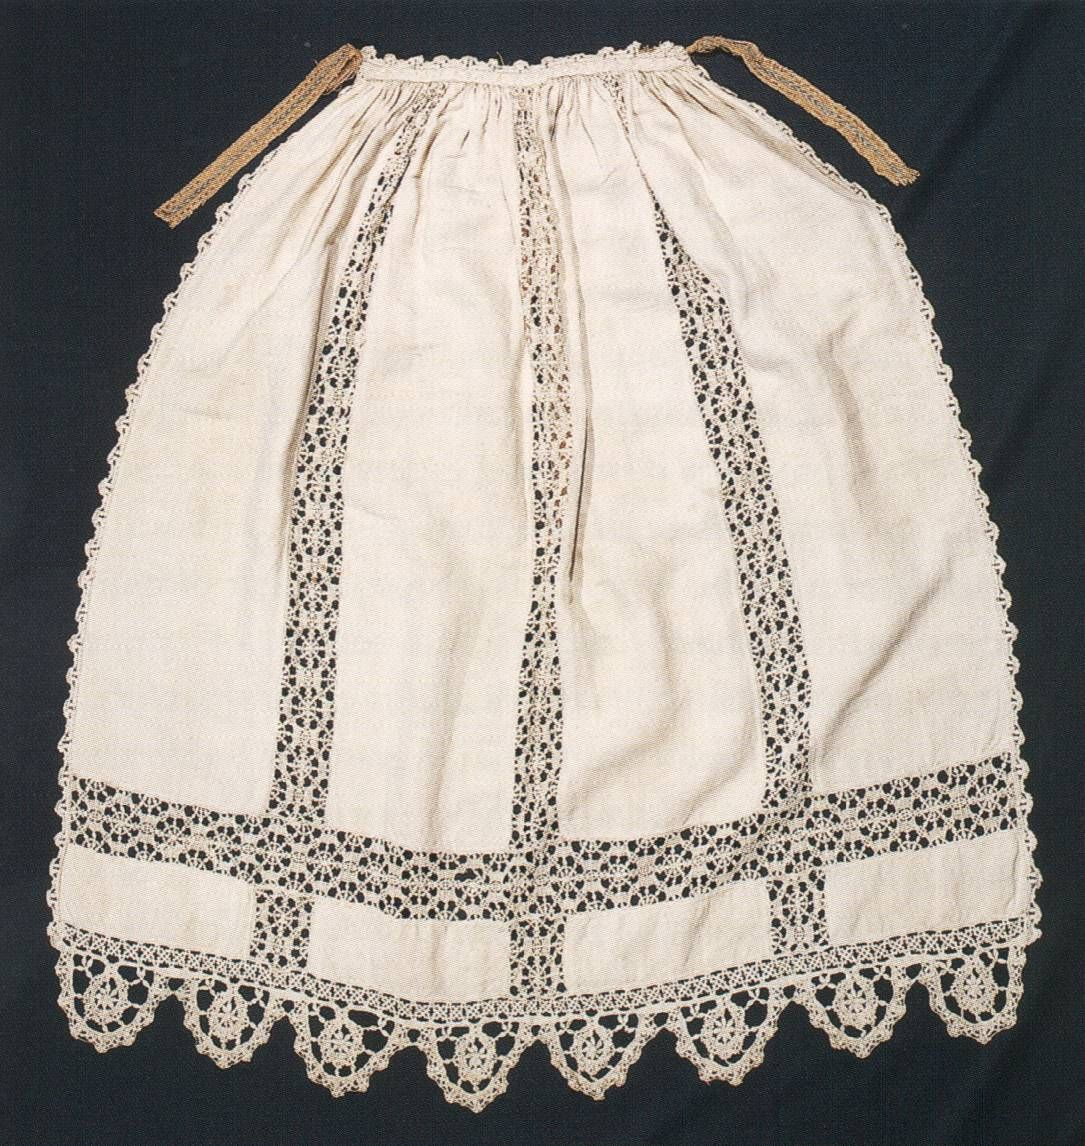 White apron lace trim -  Apron Italy 1550 1600 Aprons Were Commonly Used For Housework This